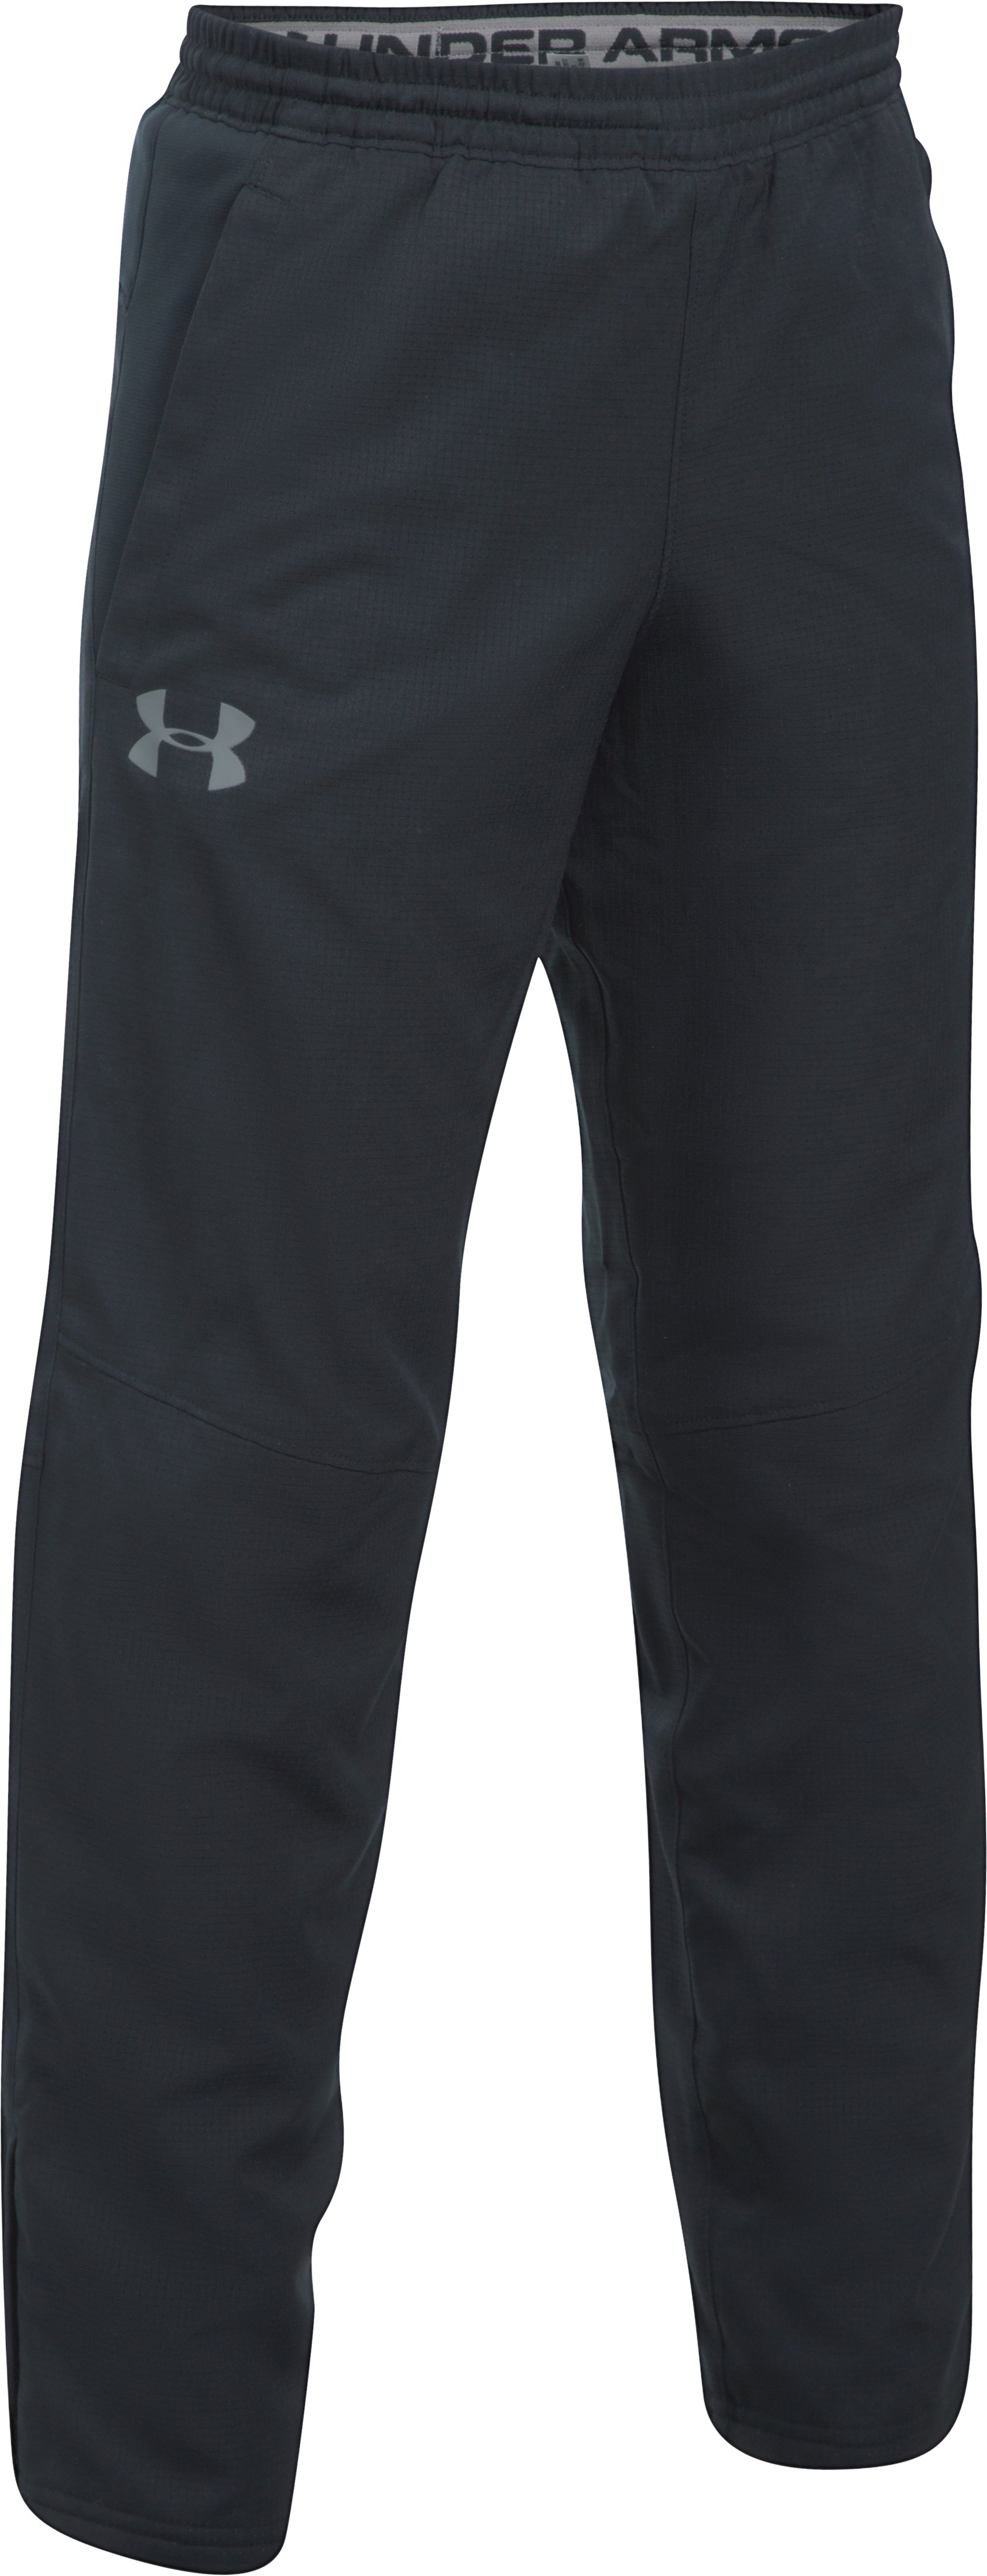 Boys' UA Construckt ColdGear® Reactor Pants, Black , undefined